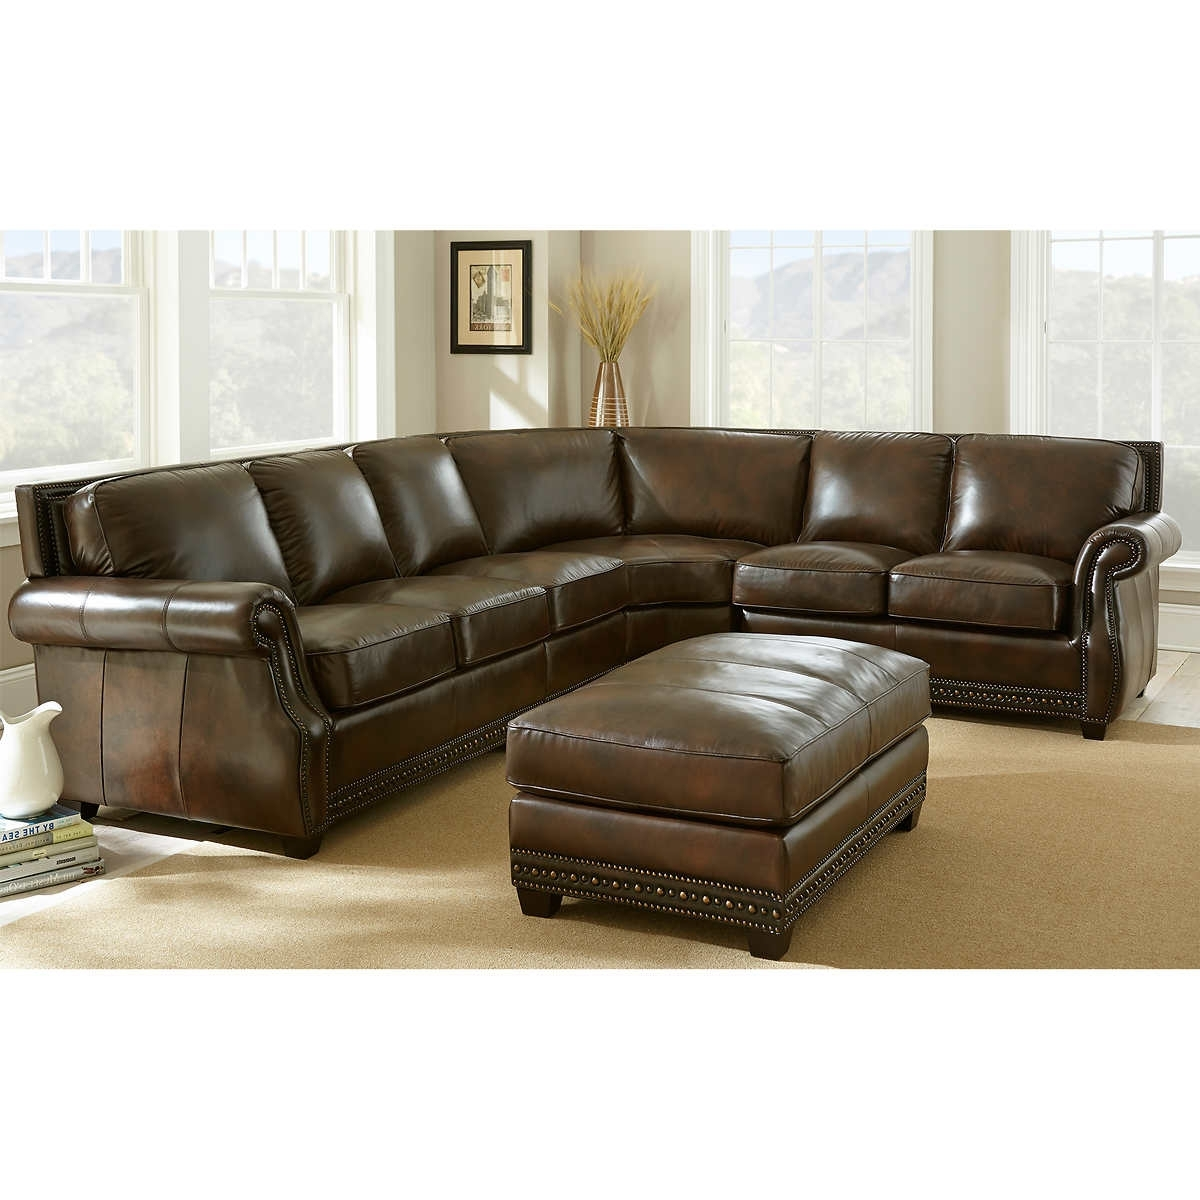 High End Leather Sectional Sofas Within Most Popular Sectional Leather Couches Natuzzi Leather Sectional Leather (View 6 of 20)